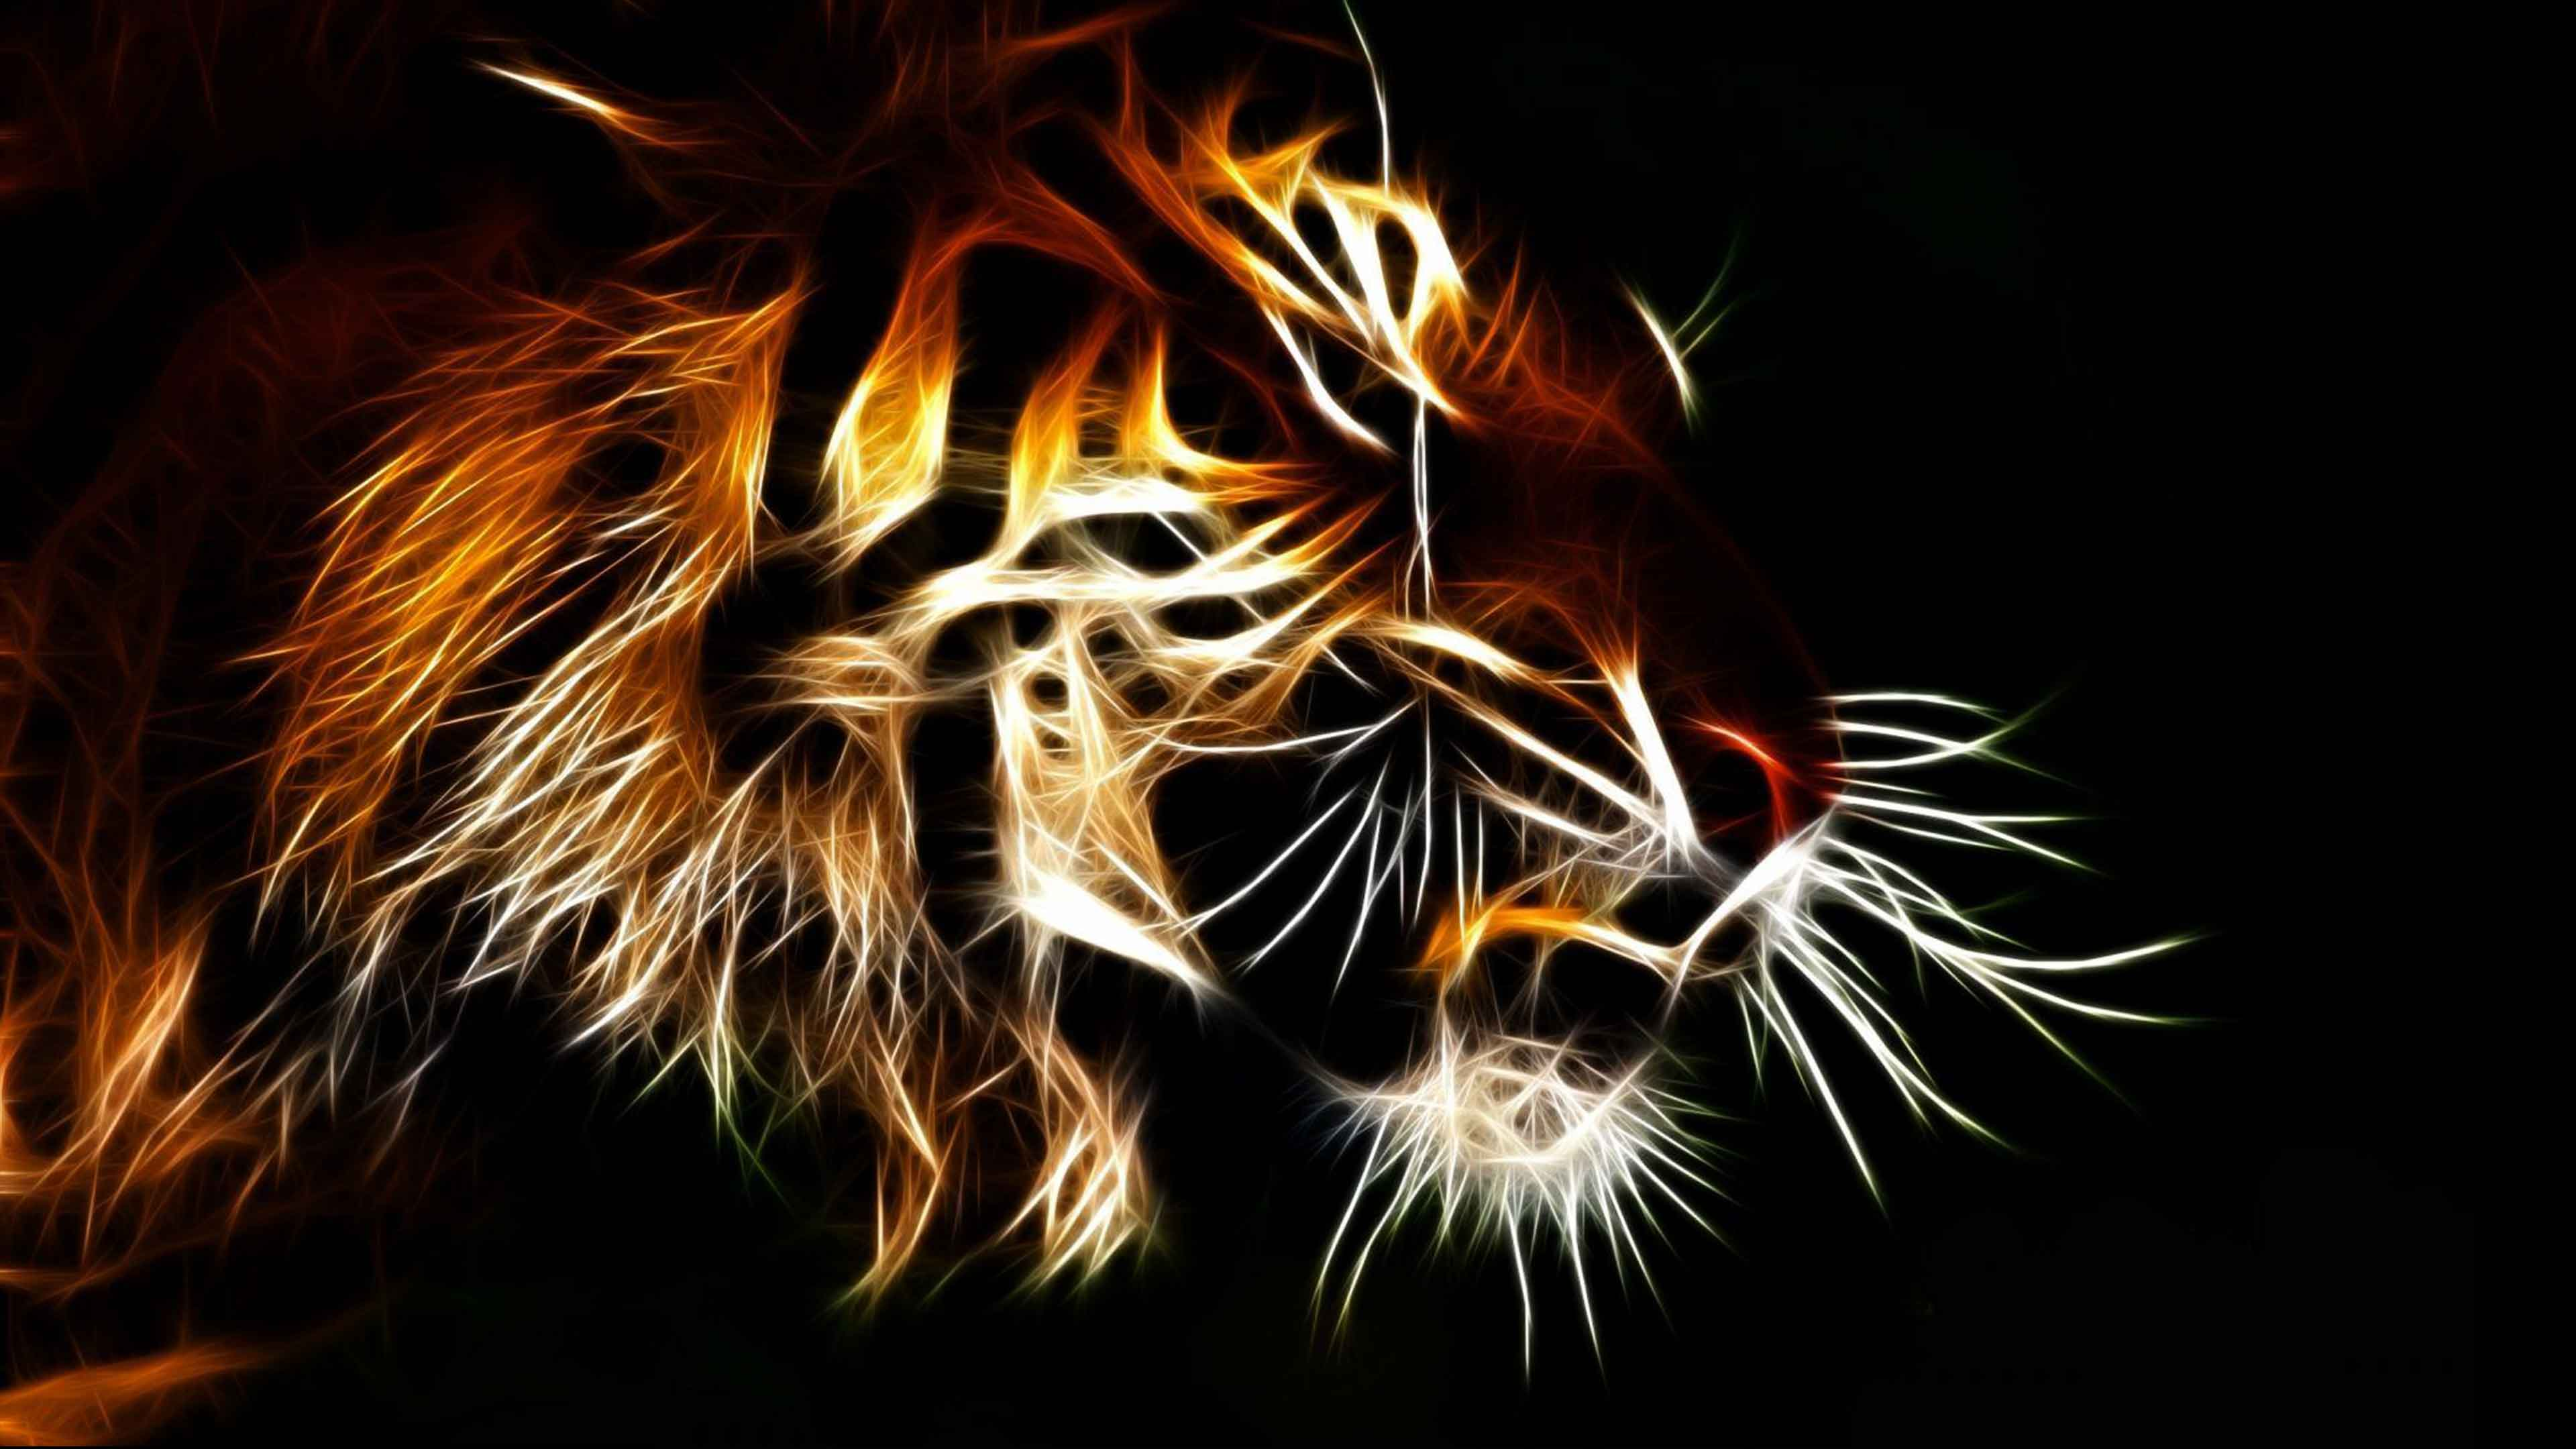 3d Animated Tiger Wallpapers - 3d wallpaper HD